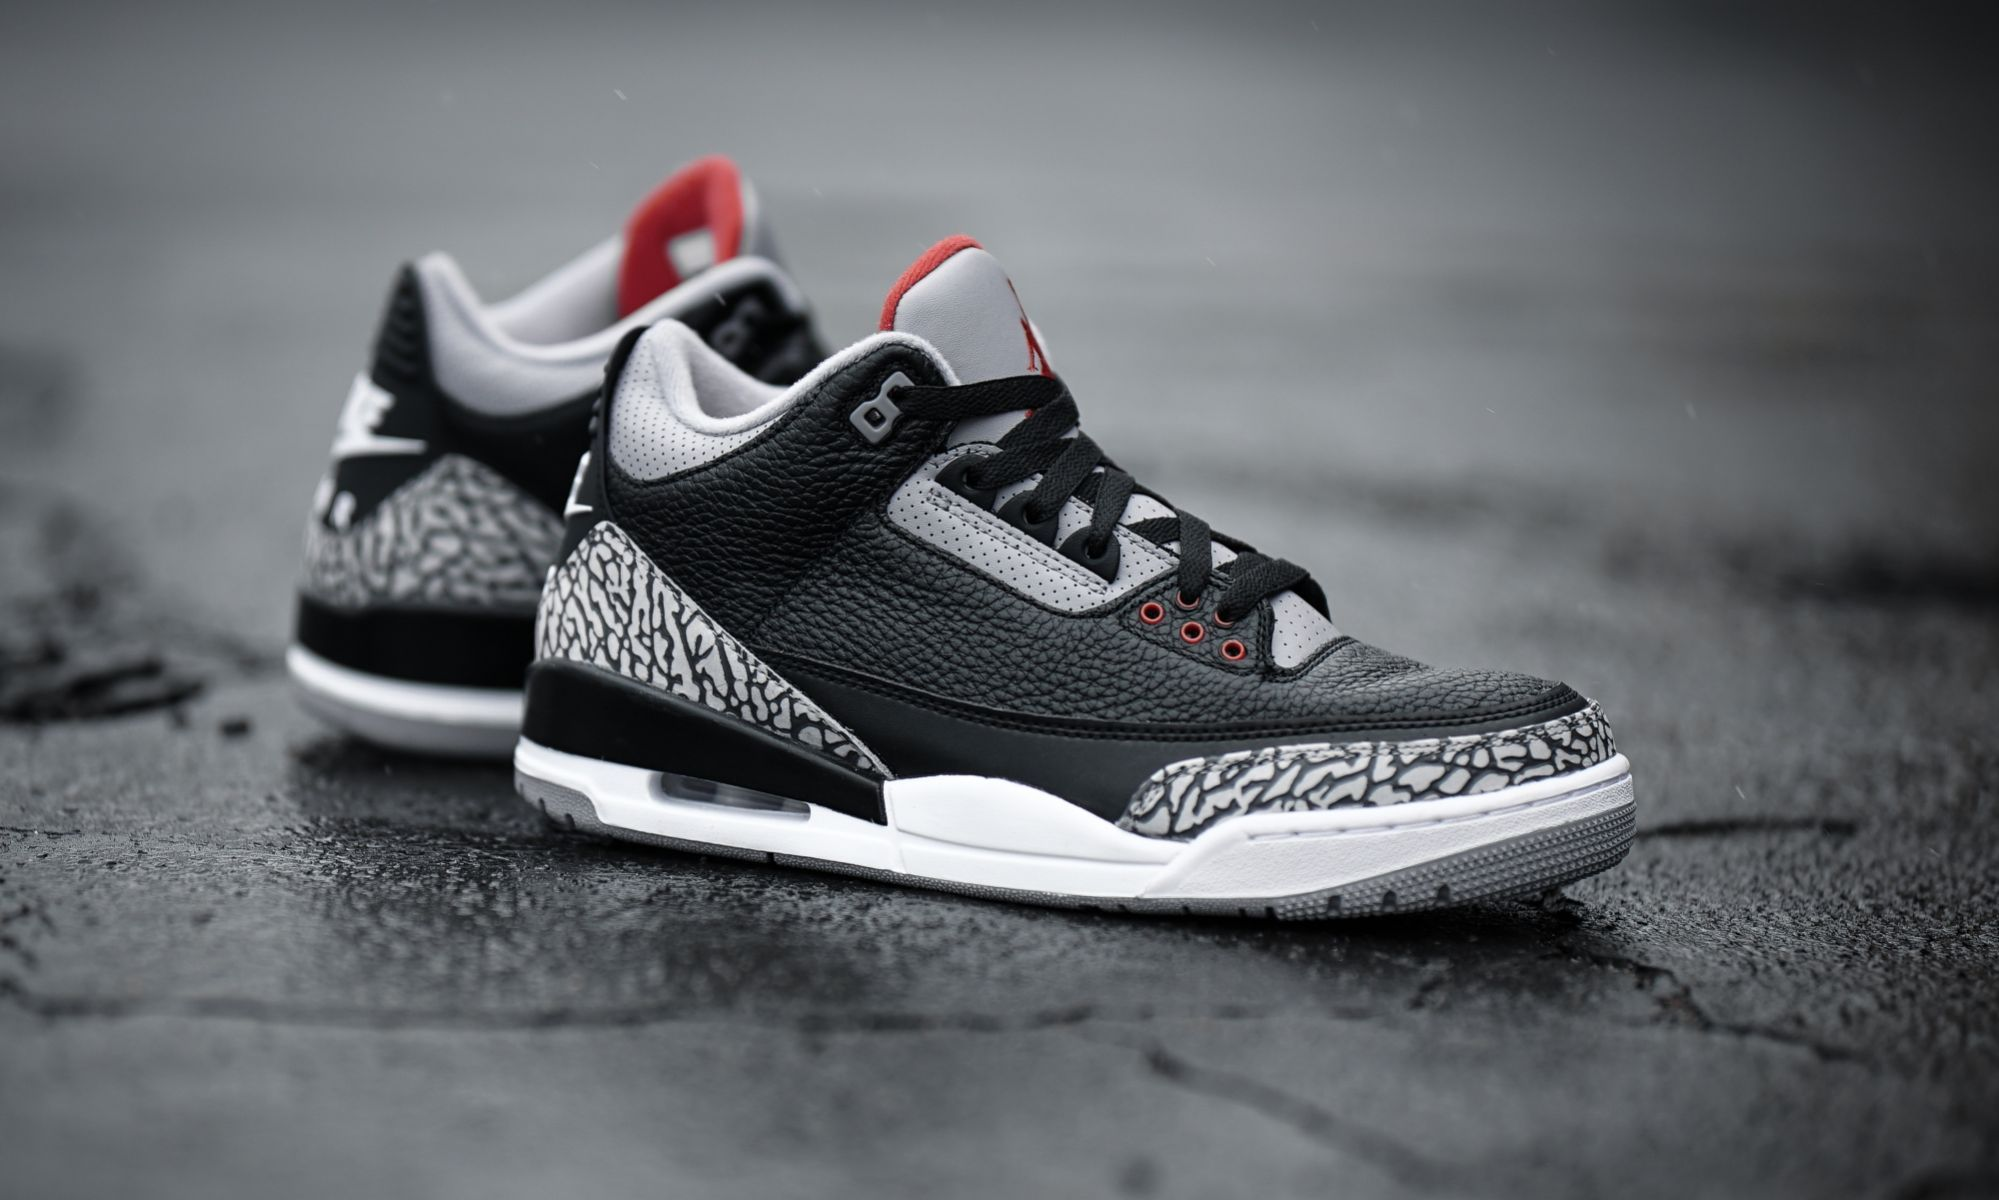 69ac587dffee Air Jordan 3 OG Black Cement in 2019